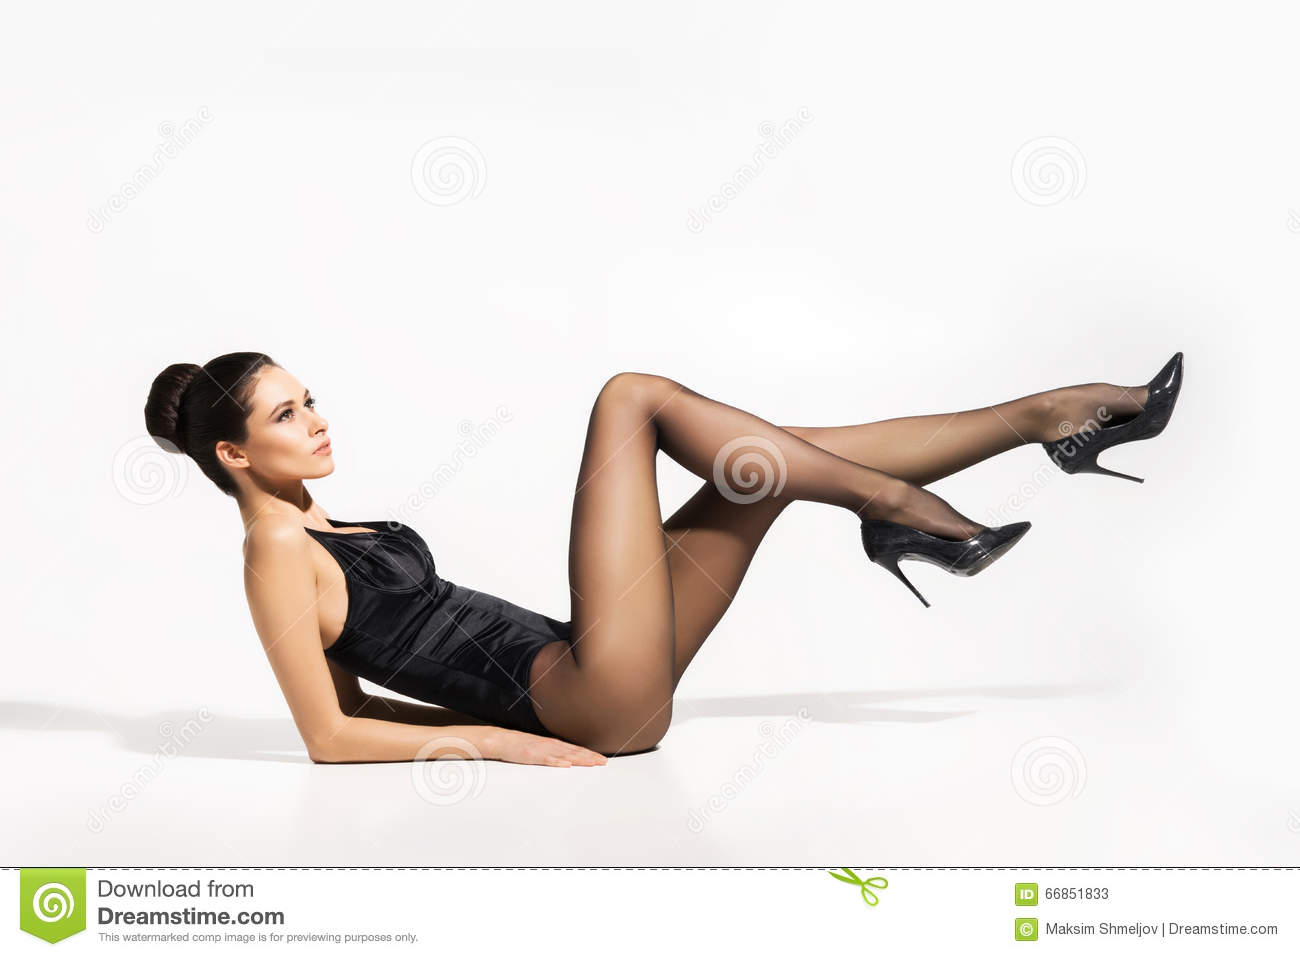 Seductive Woman Wearing Pantyhose And Heels With Sexy Legs